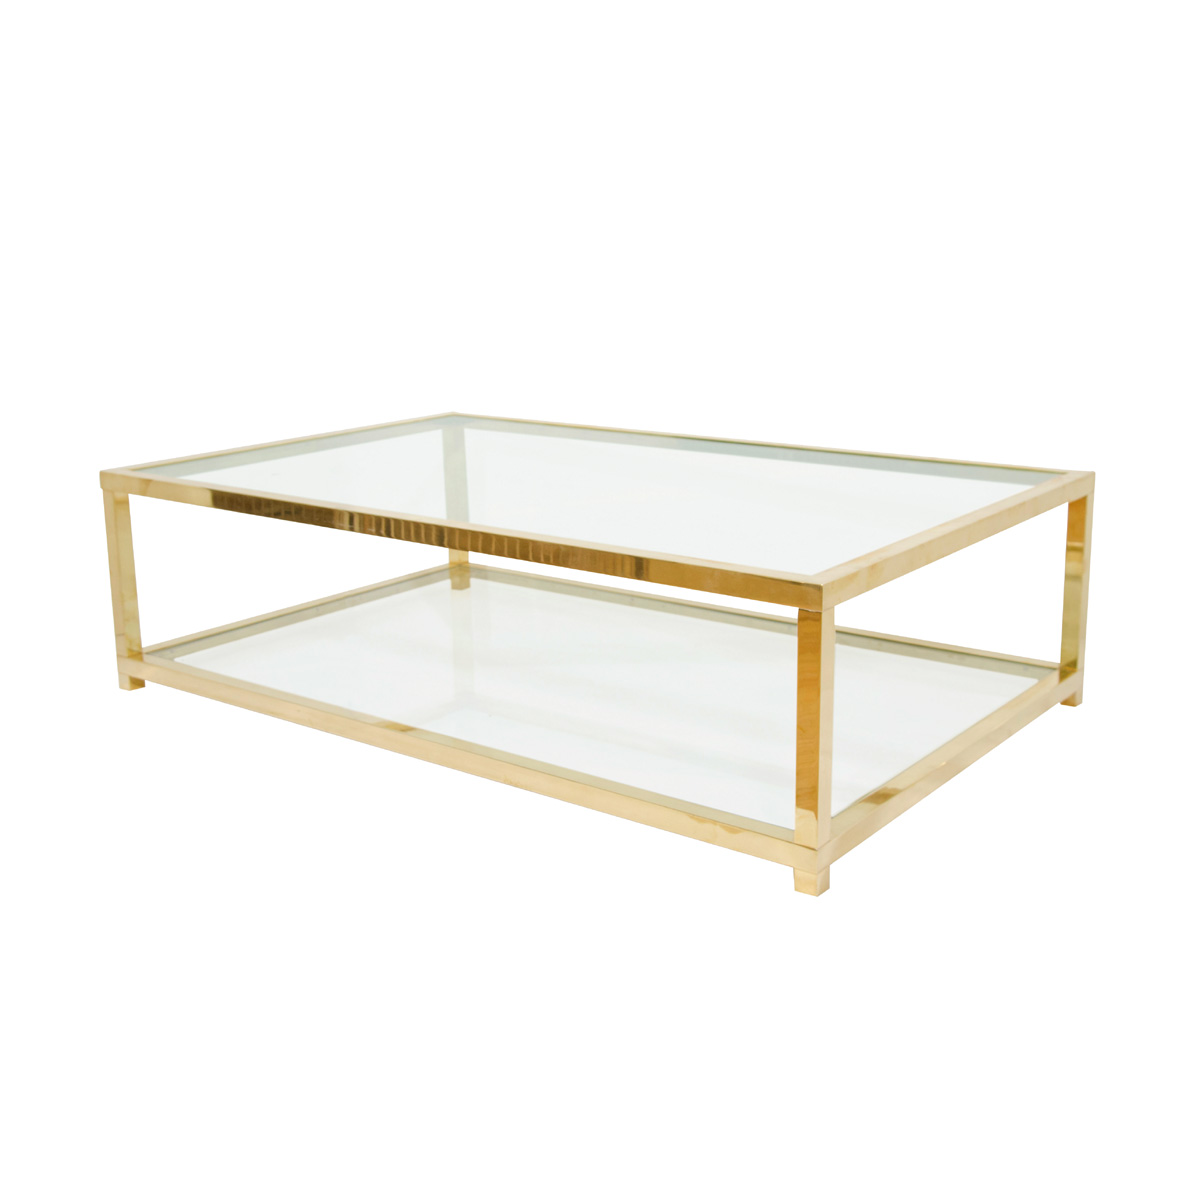 Two tiered brass and glass coffee table Coffee Tables  : 211F7674 1200 from www.johnsalibello.com size 1200 x 1200 jpeg 108kB